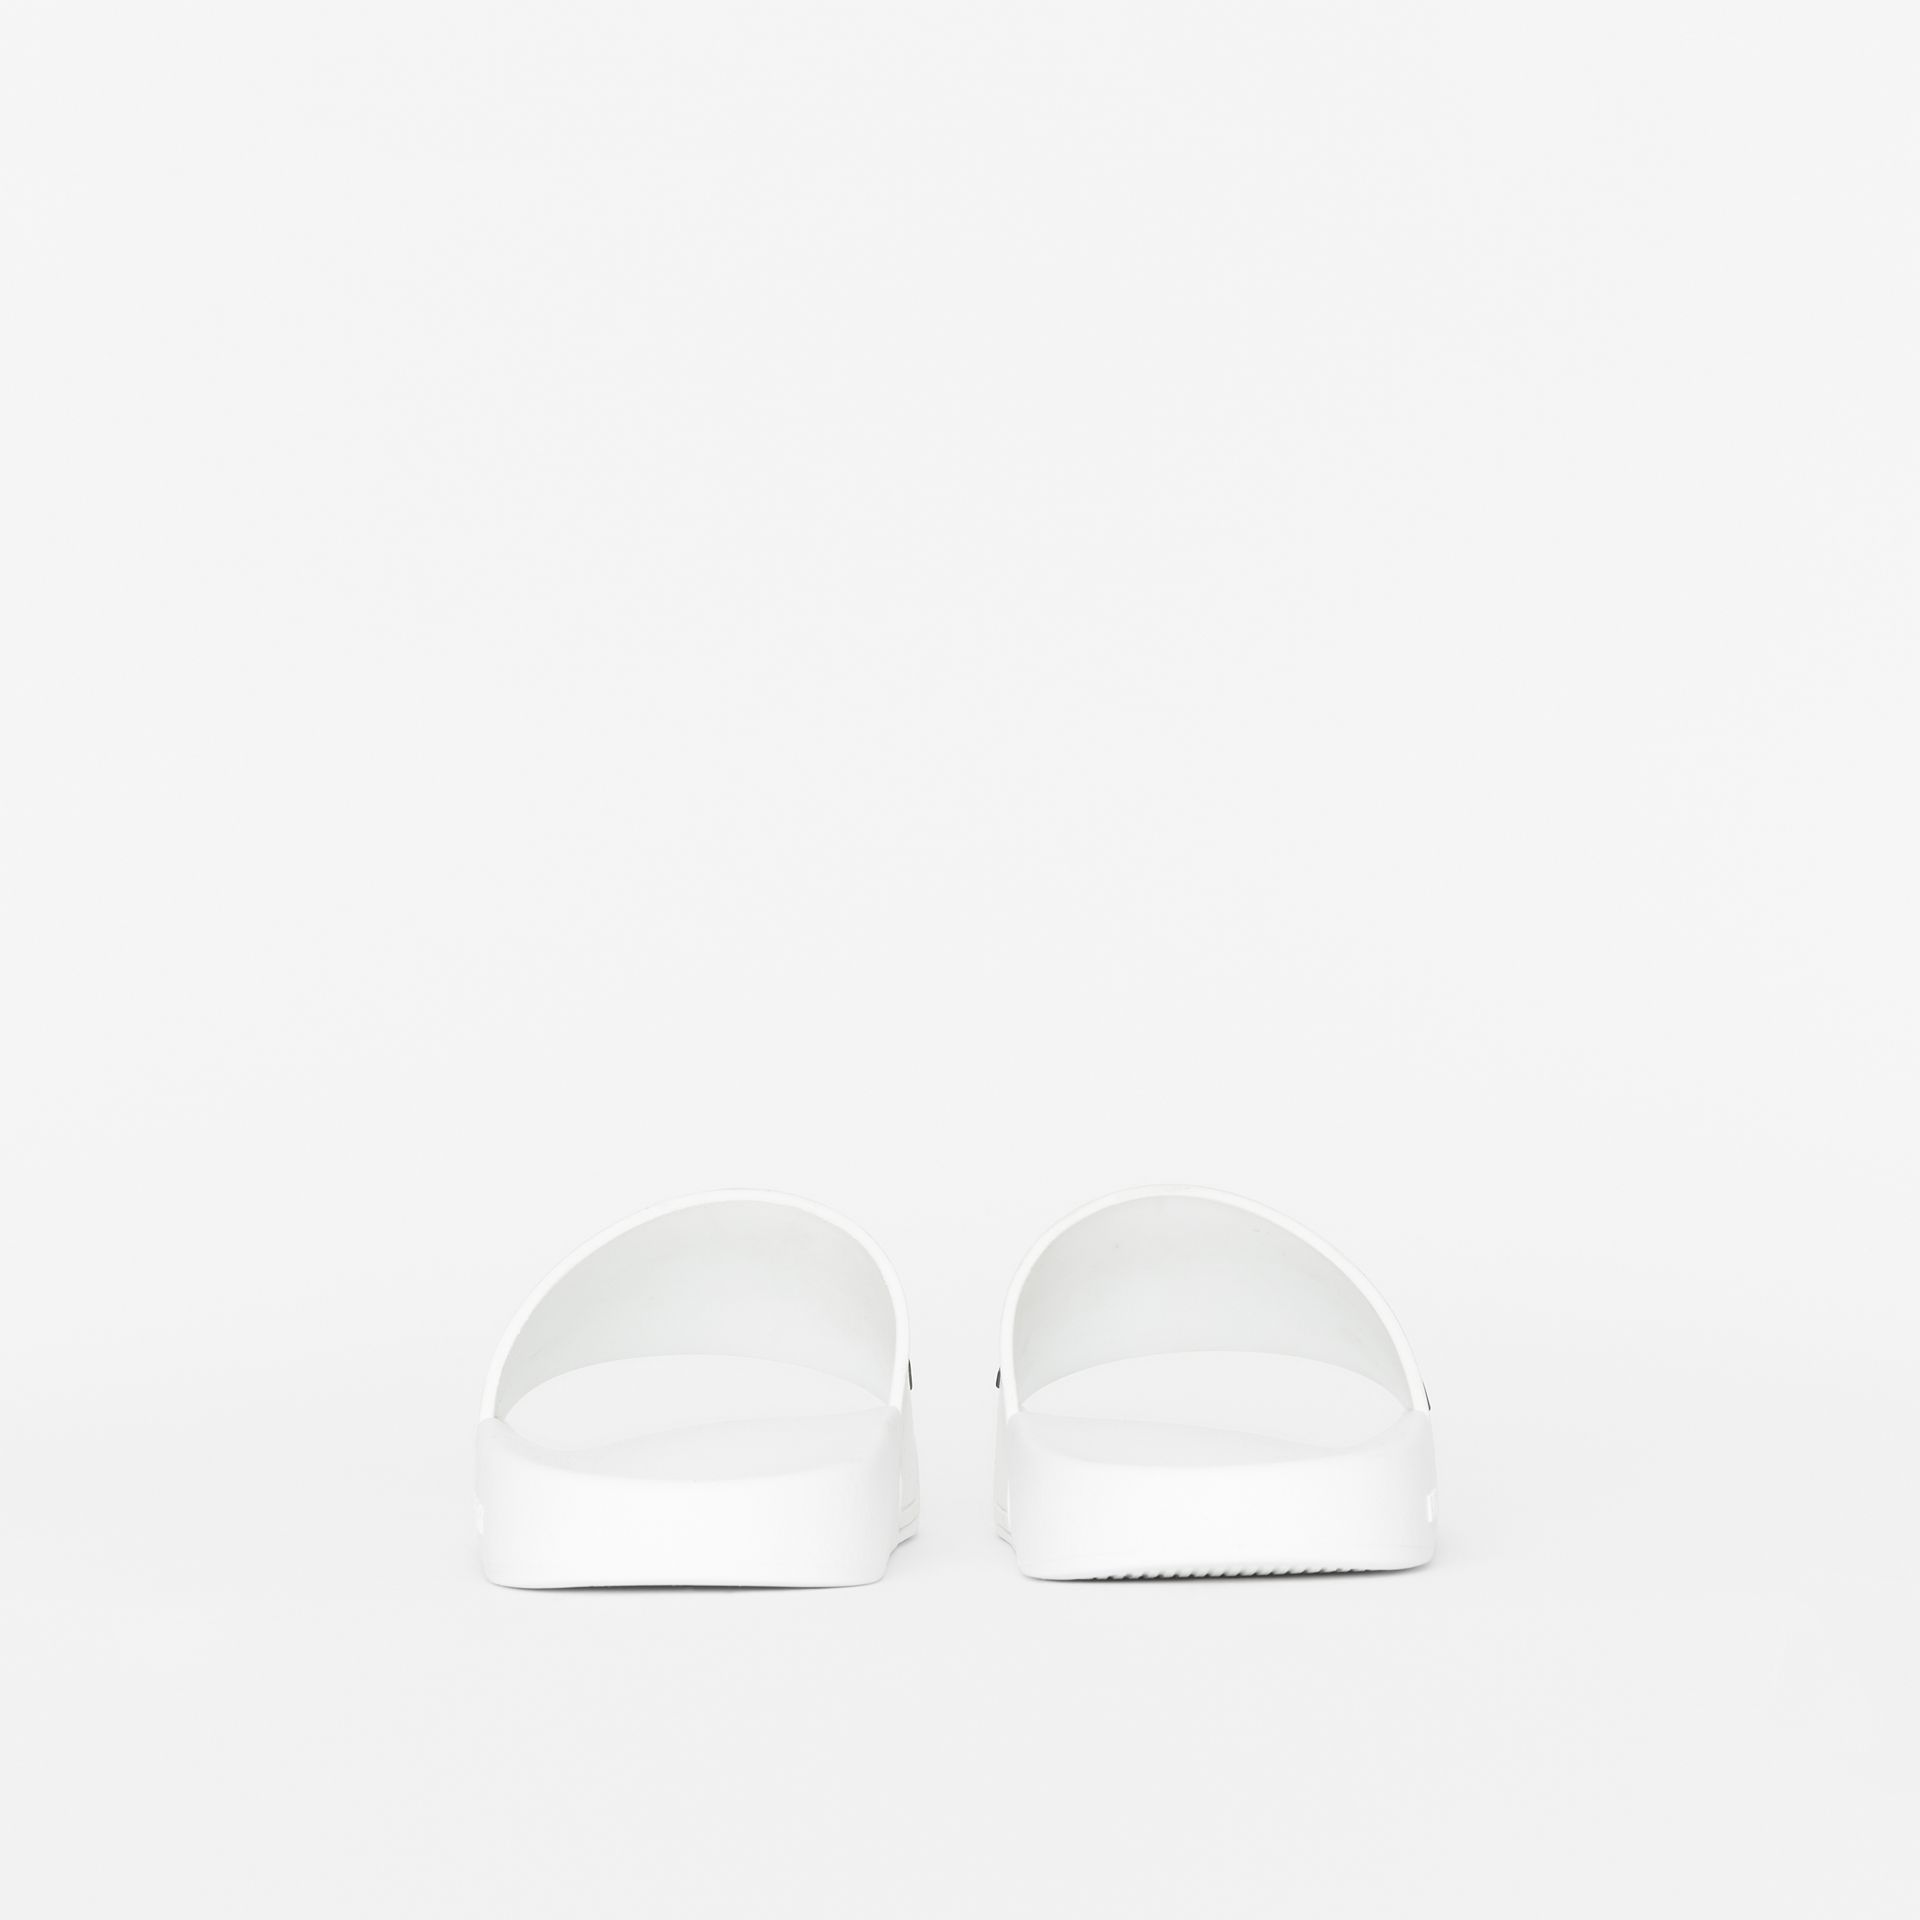 Kingdom Motif Slides in Optic White - Women | Burberry Singapore - gallery image 3